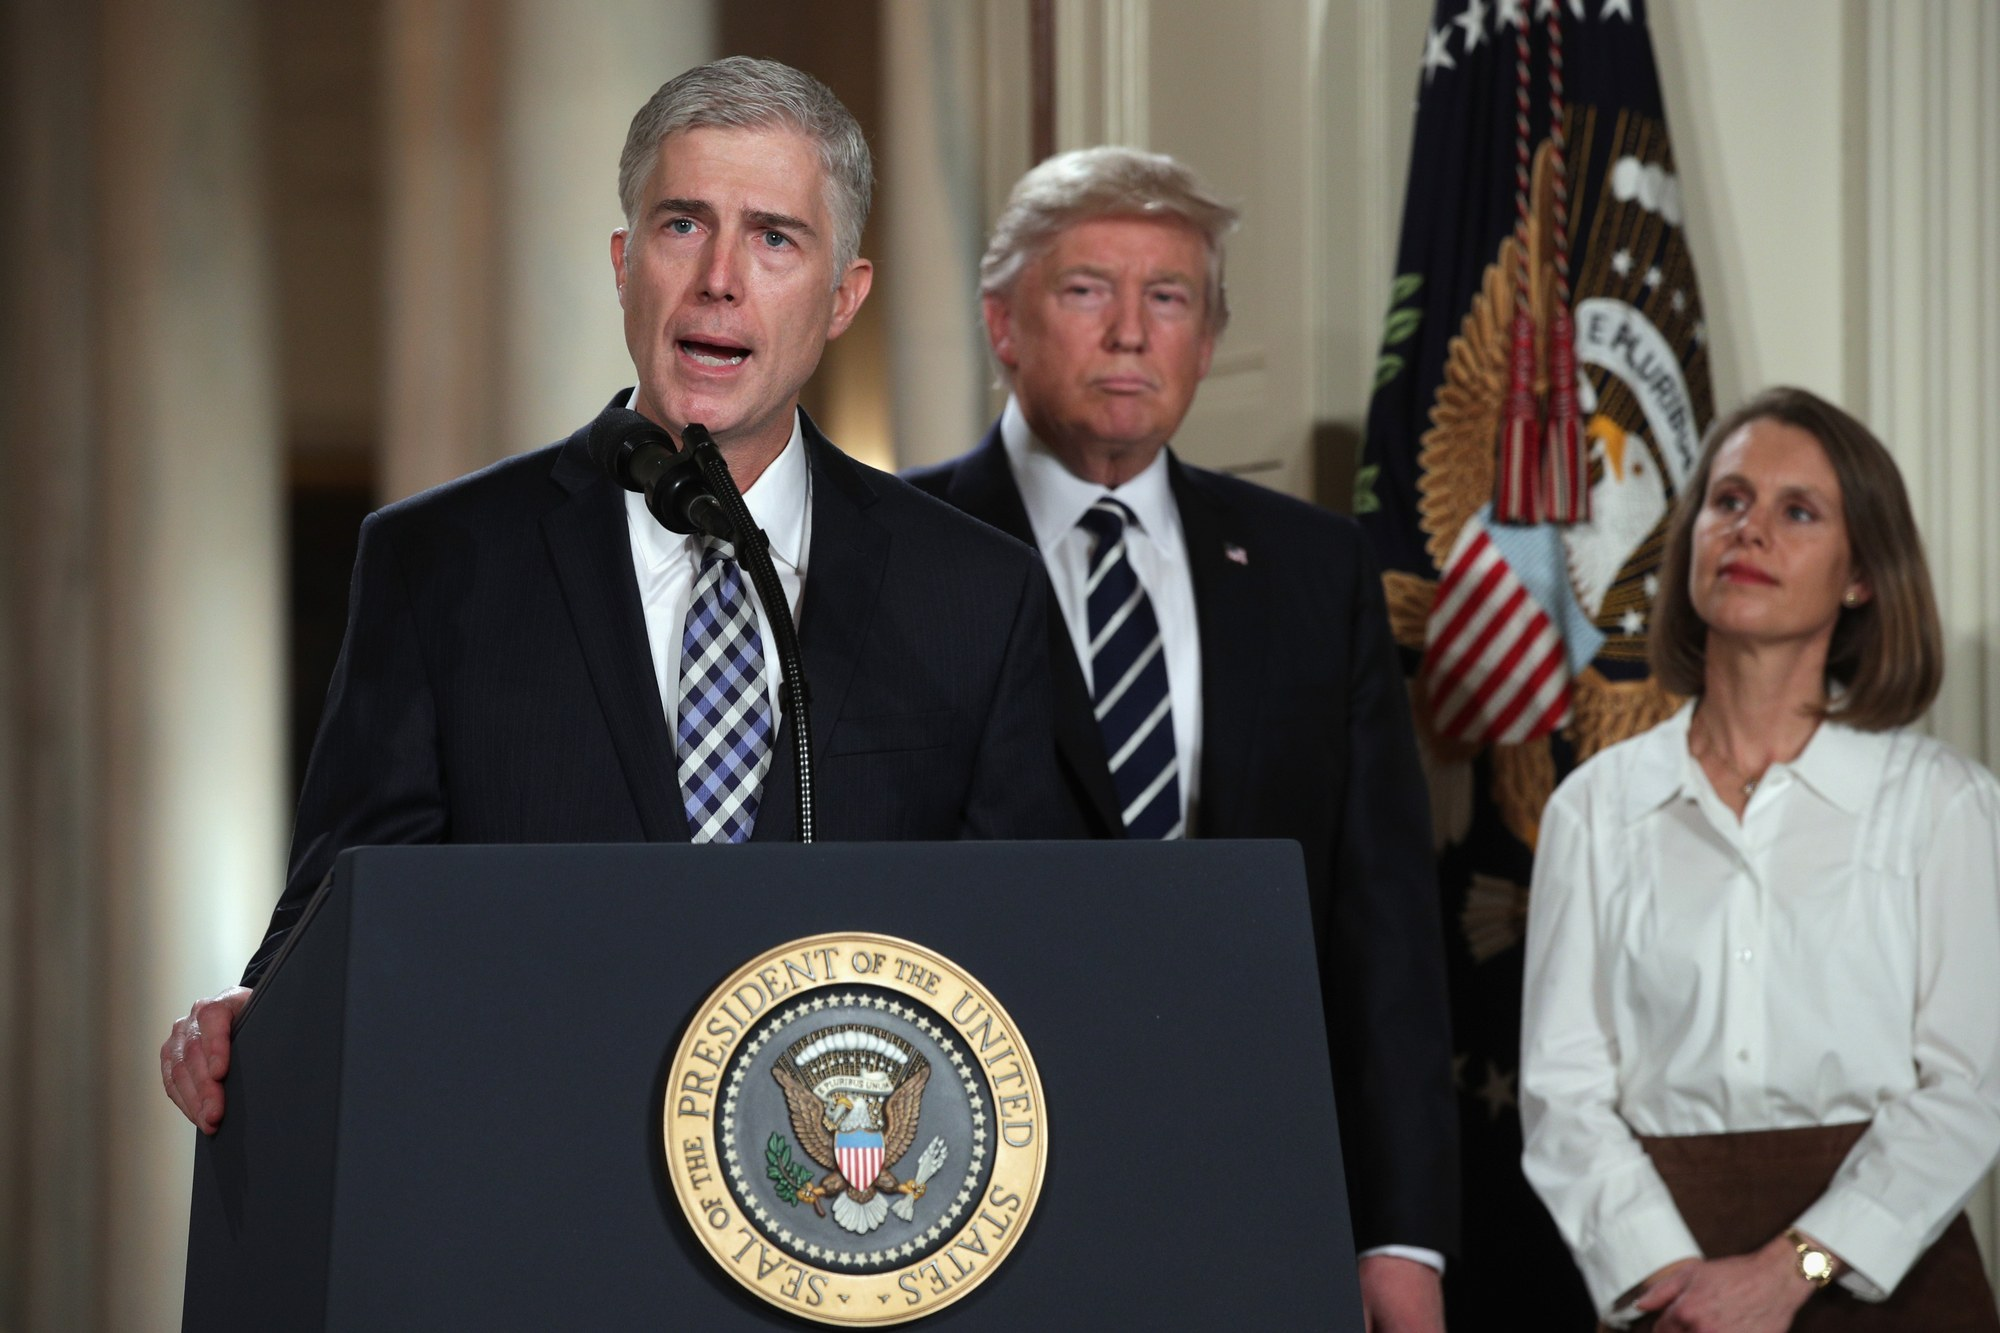 Neil Gorsuch is From Colorado, But Does He Support Marijuana Legalization?